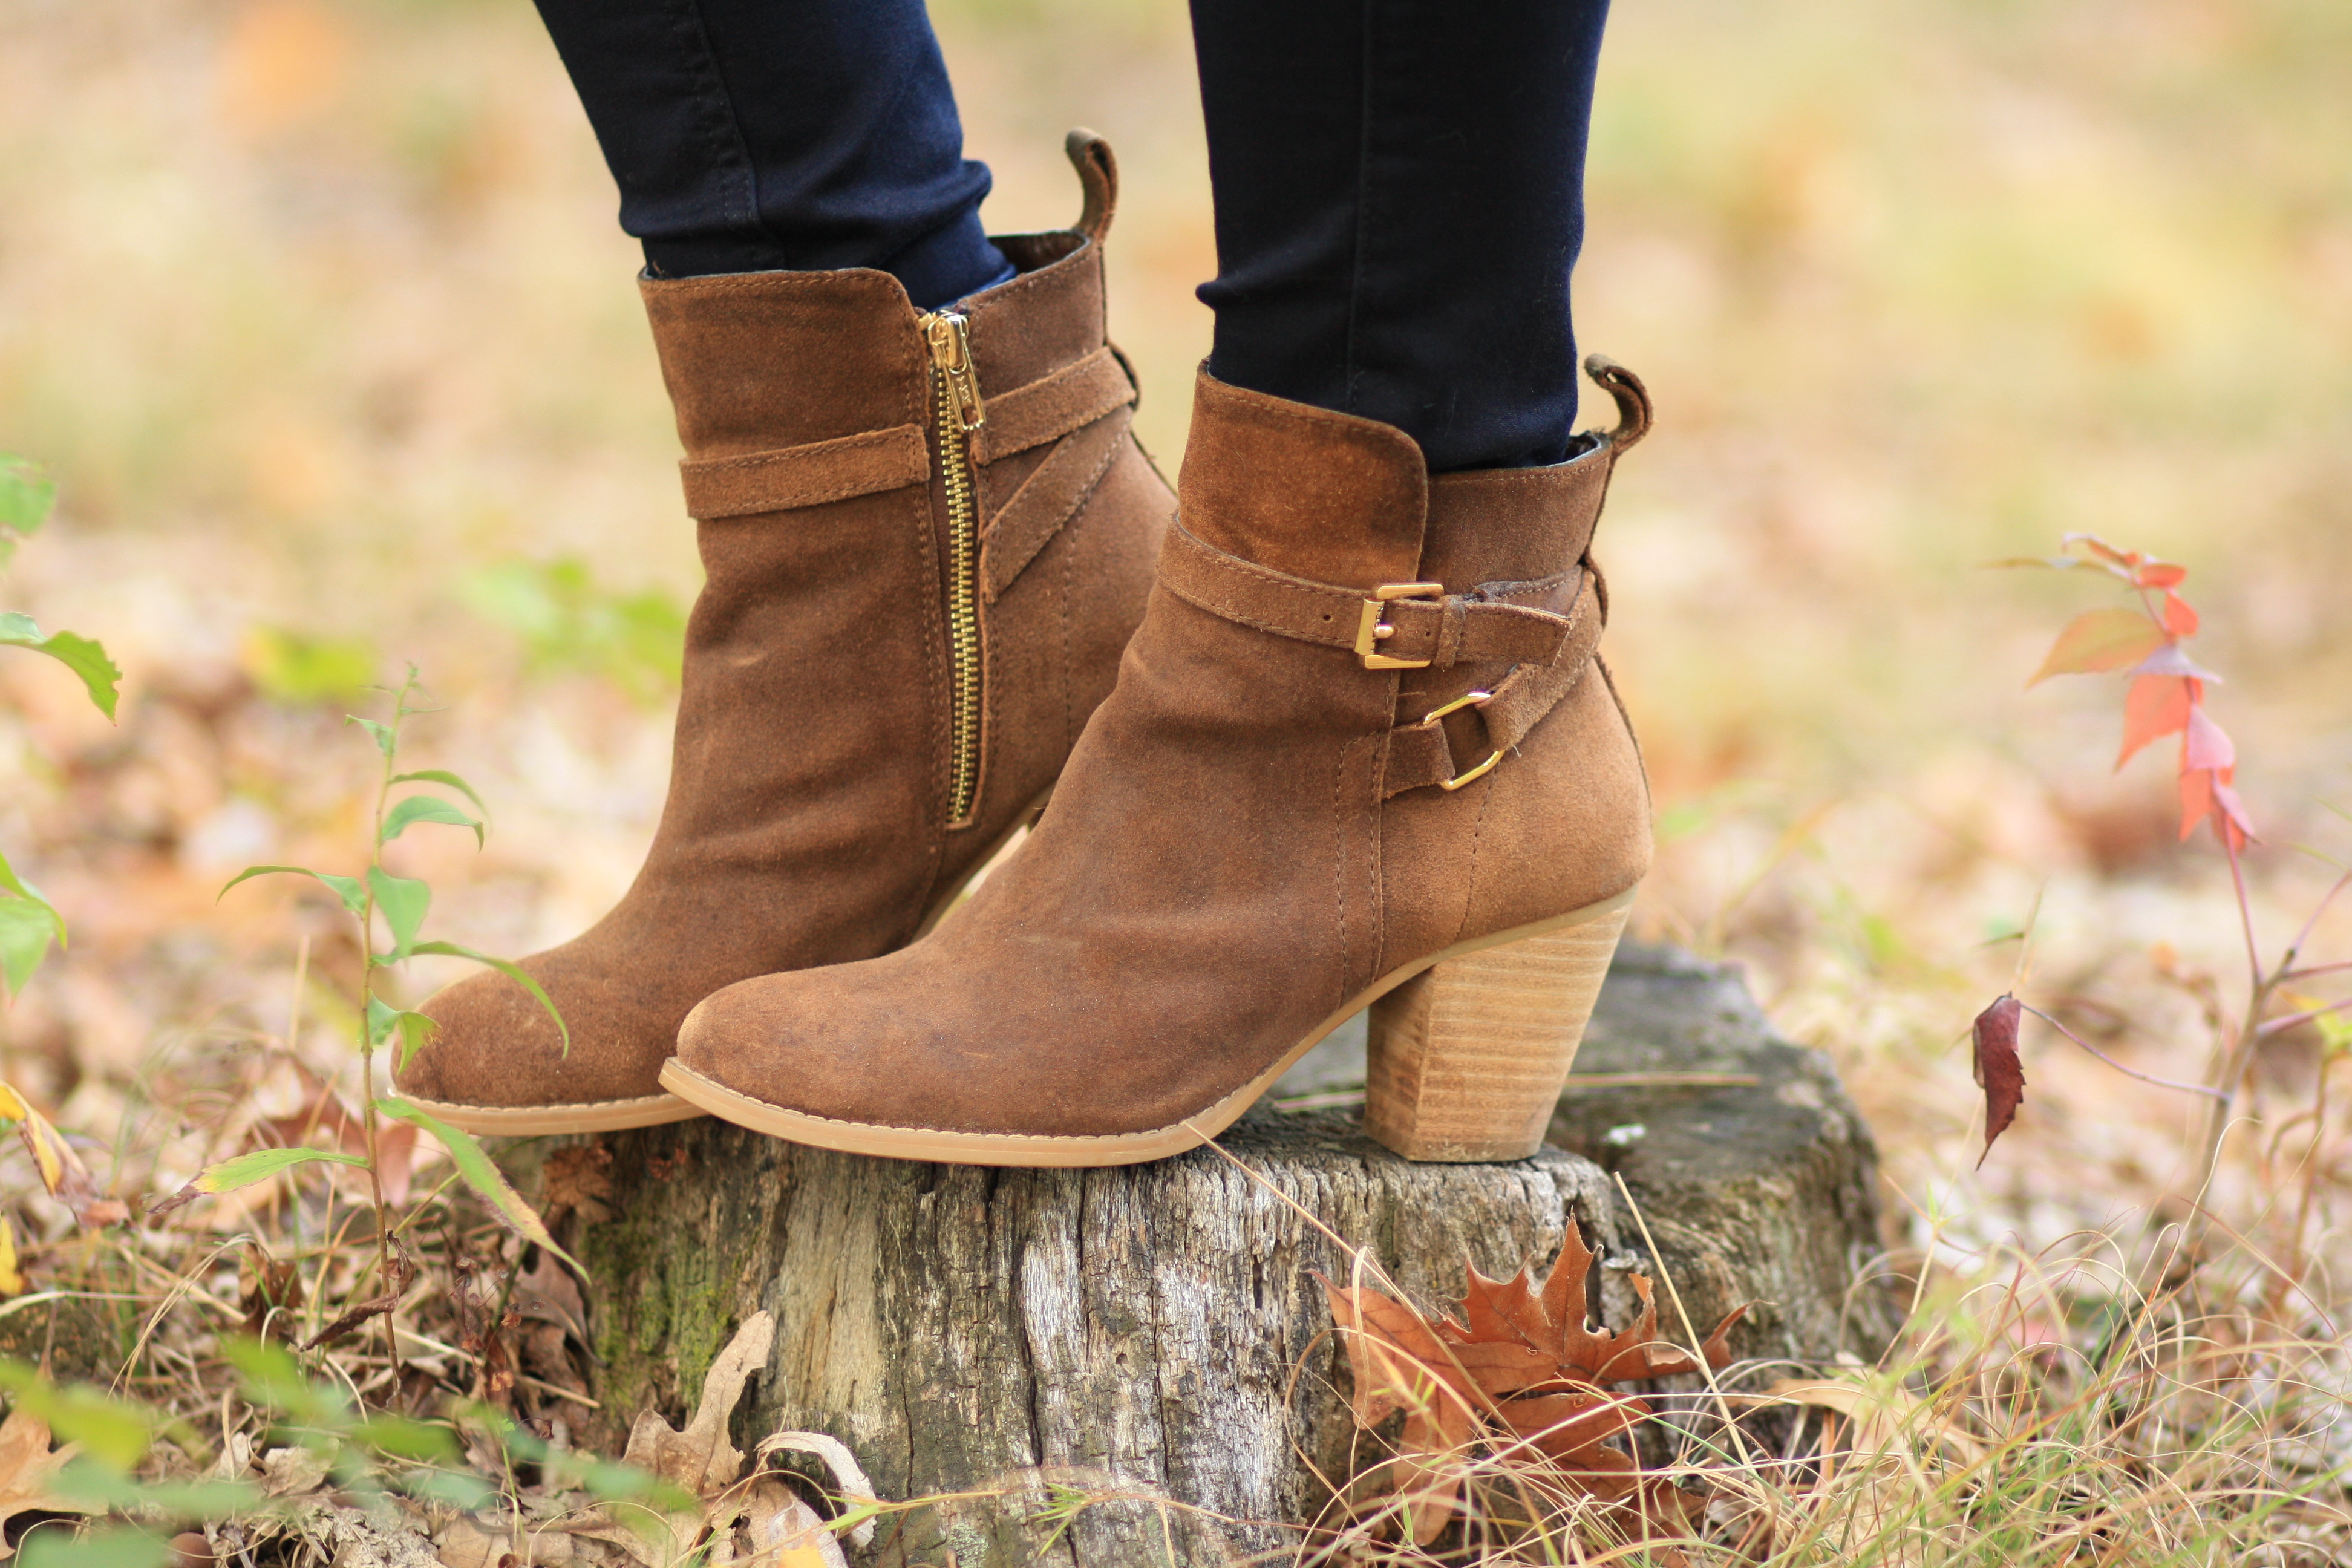 Women's Booties and Ankle Boots for Fall Step into the season in a style-defining way when you incorporate our amazing selection of ankle boots into your fall wardrobe. You'll love the subtle tweak that a well-chosen pair of booties puts to your favorite ensembles.